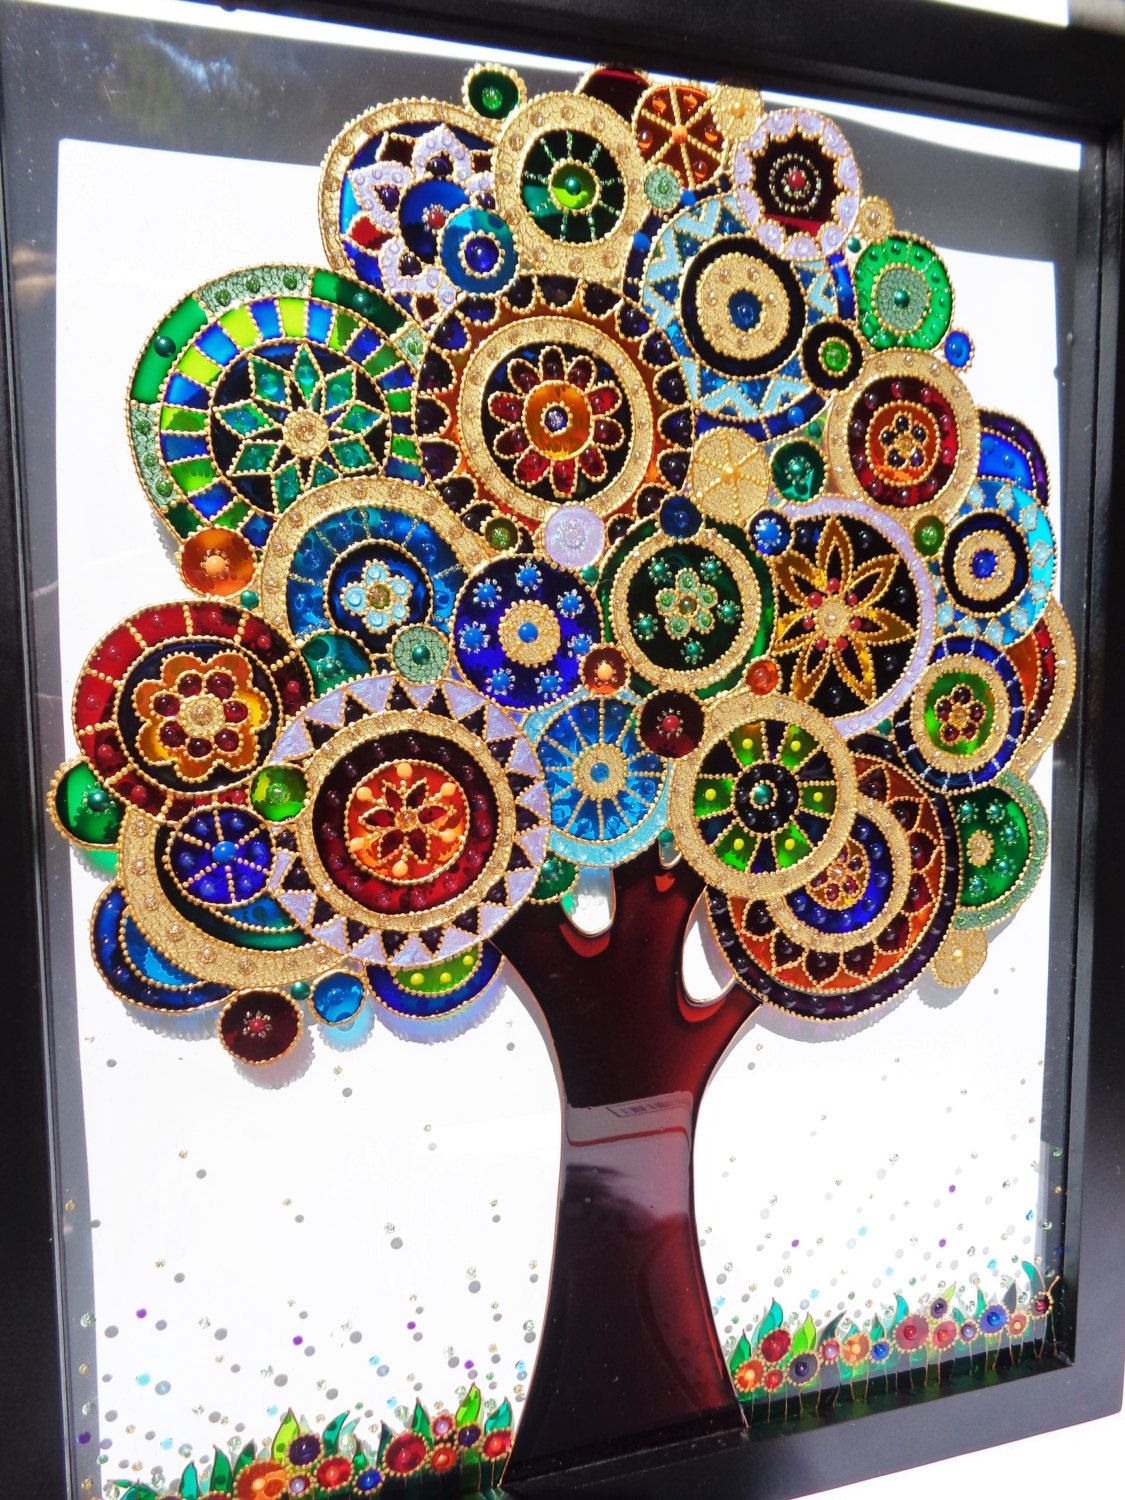 Tree Of Life Art 15x12 Bohemian Decor Wall Decor Glass Painting Doodle Art By Cozyhome1 On Etsy